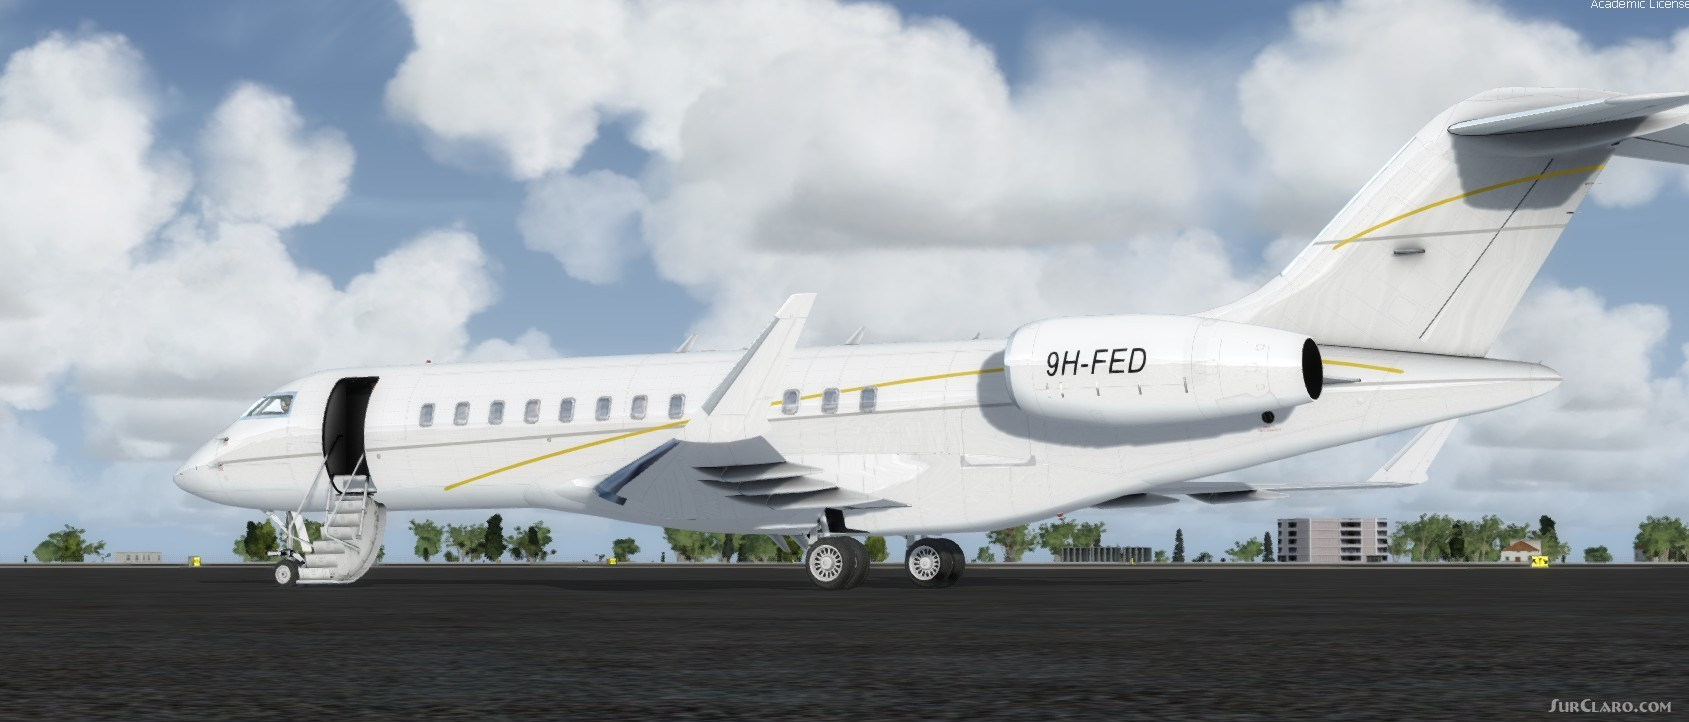 FSX P3D Bombardier Global Express XRS 9H-FED Aircraft